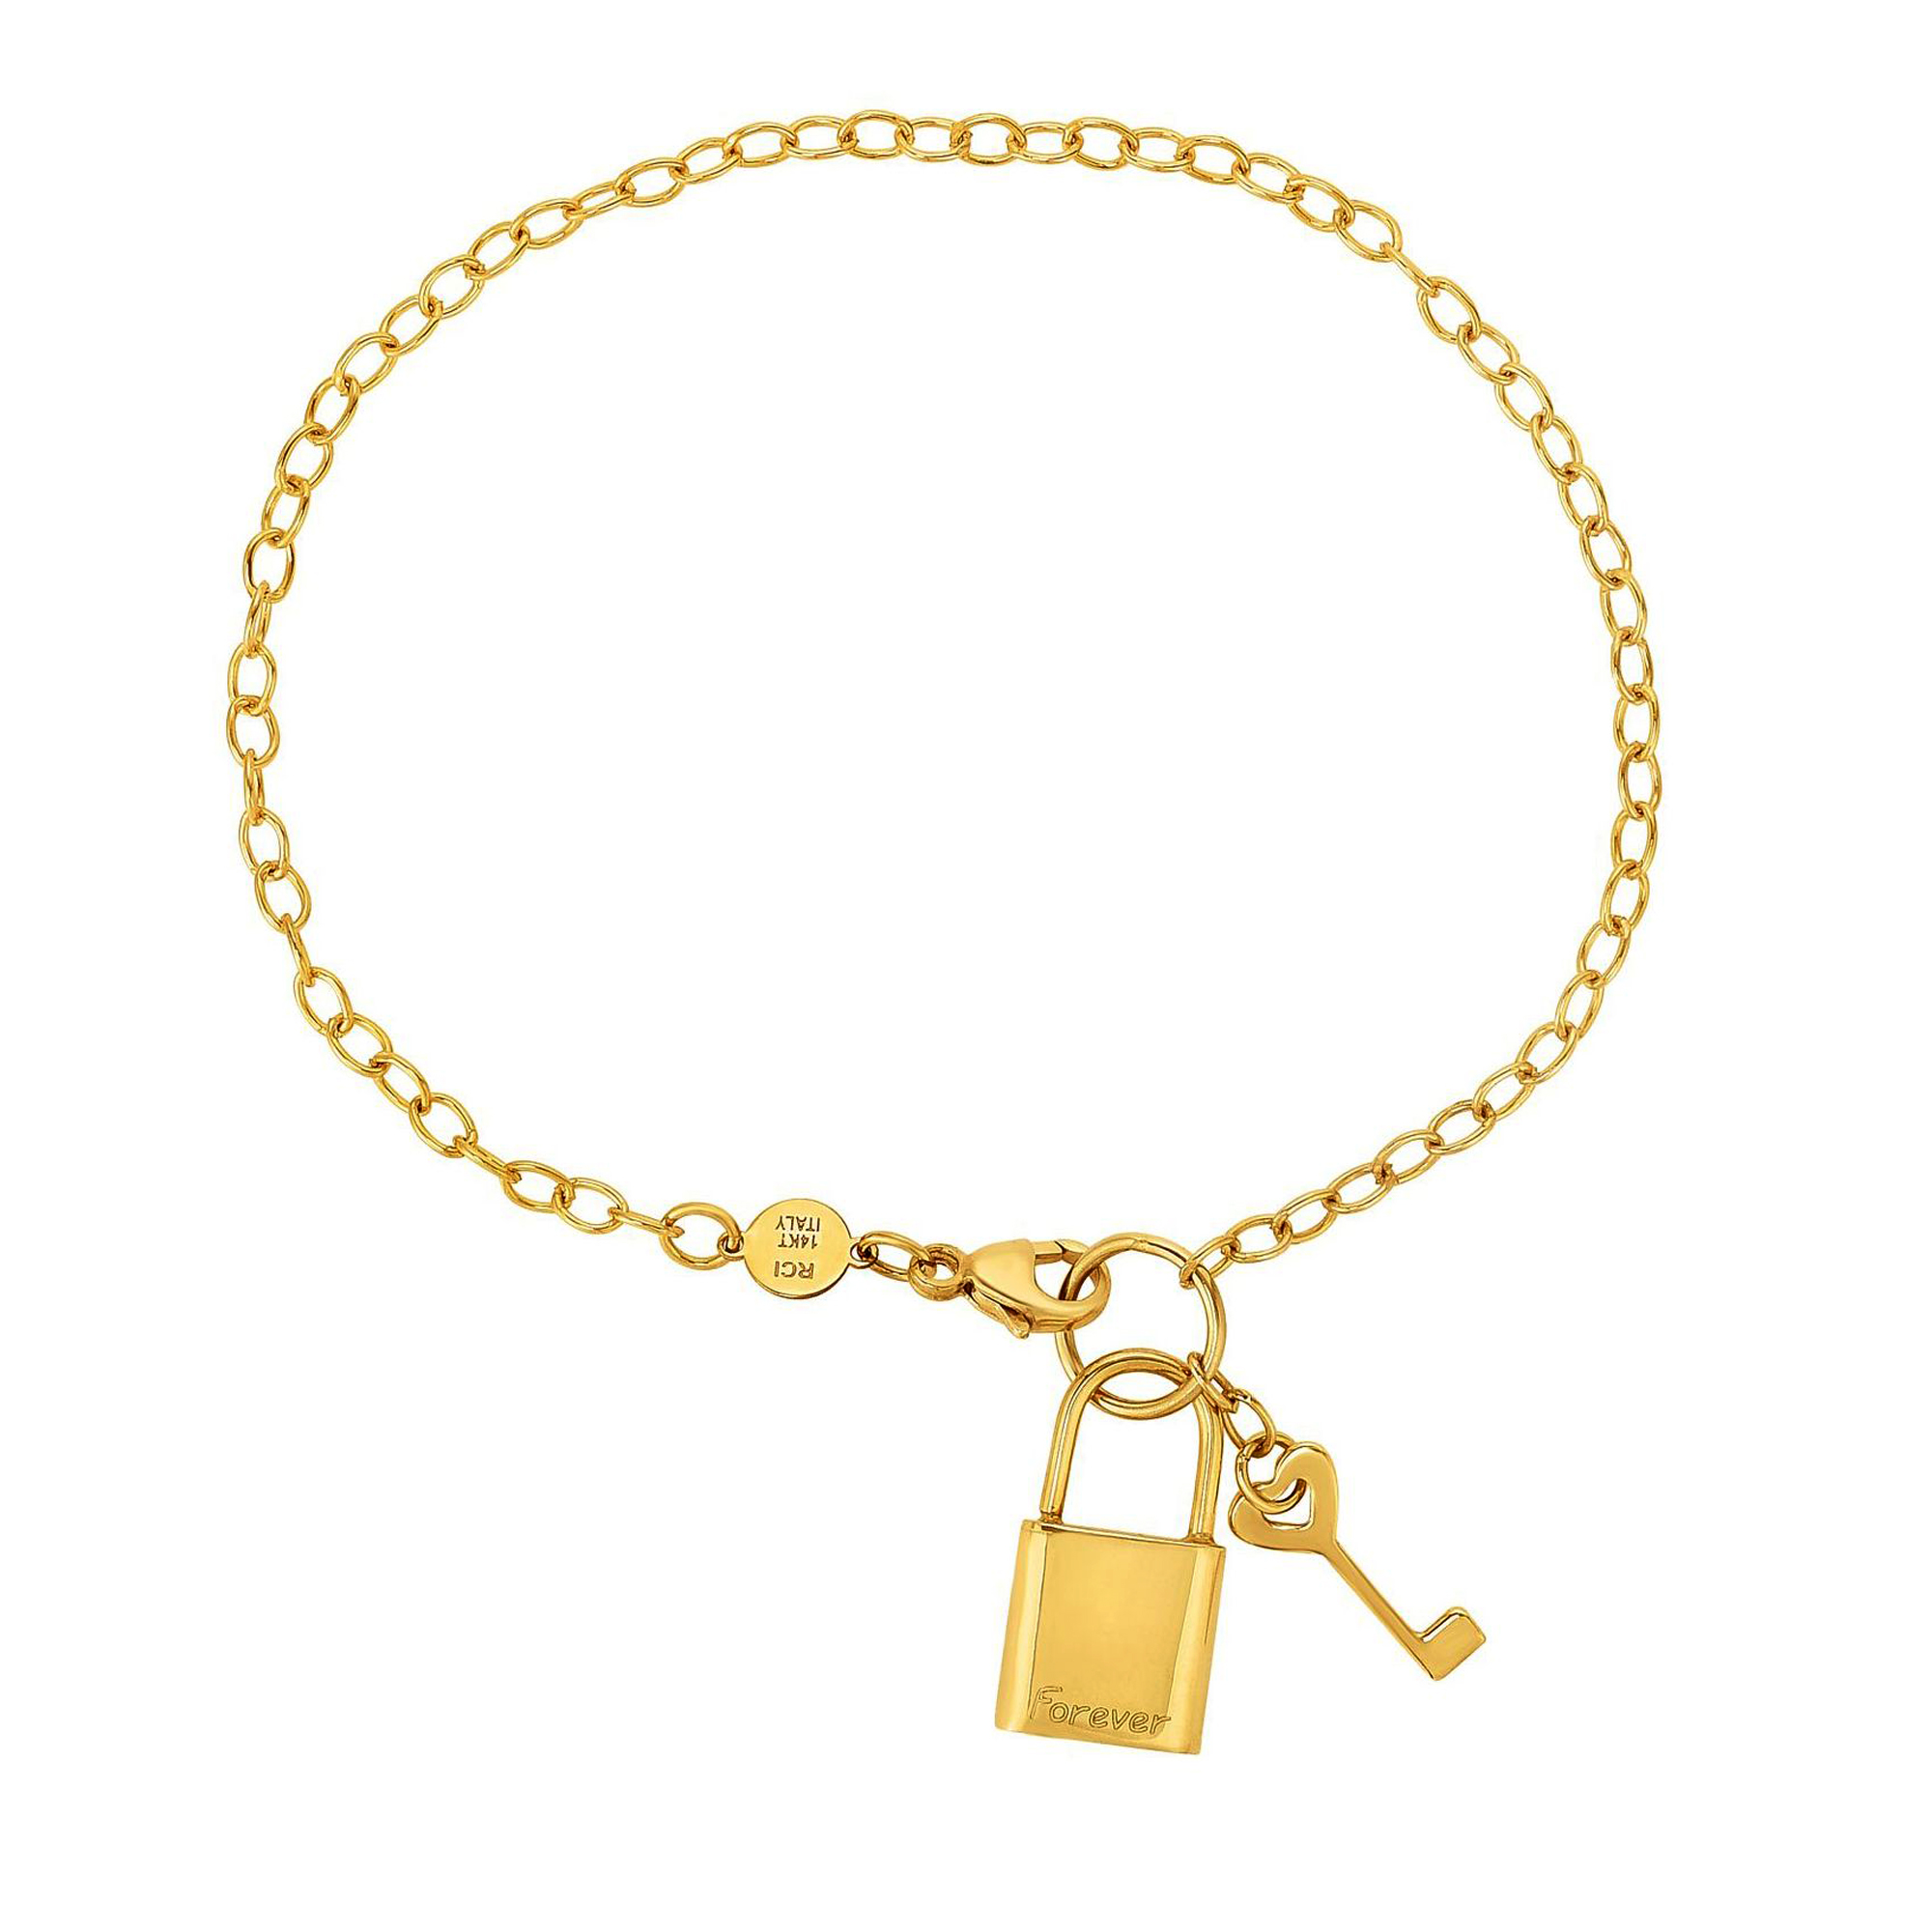 14k Yellow Gold Chain Lock And Key Bracelet, 7.5″